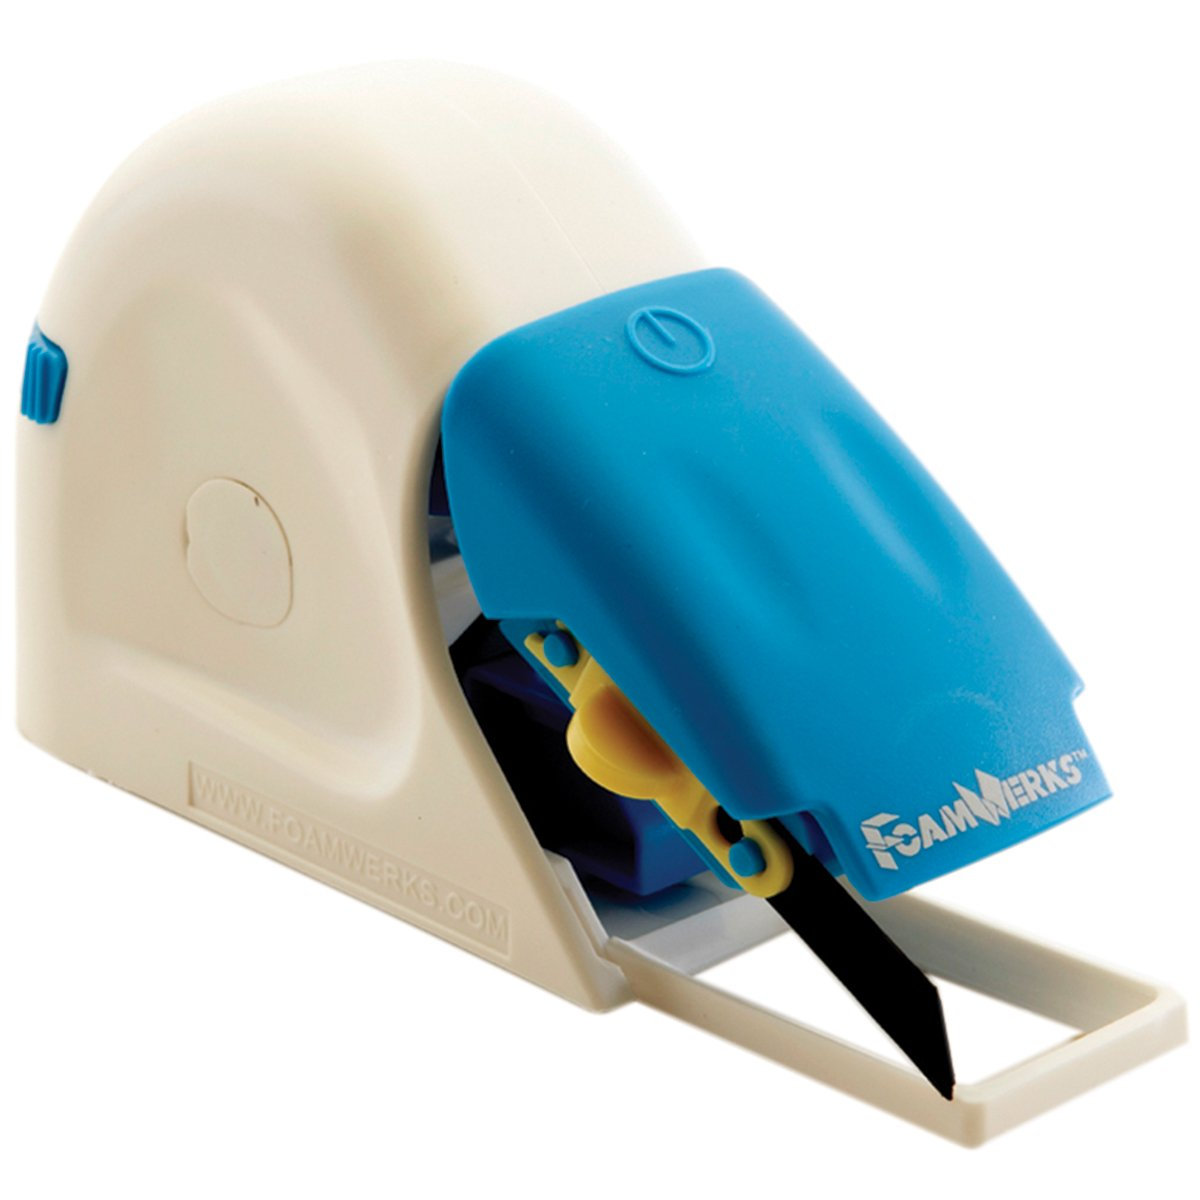 Logan Graphics FoamWerks WC-C6001 Straight Cutter with Adjustable Blade (1296384)